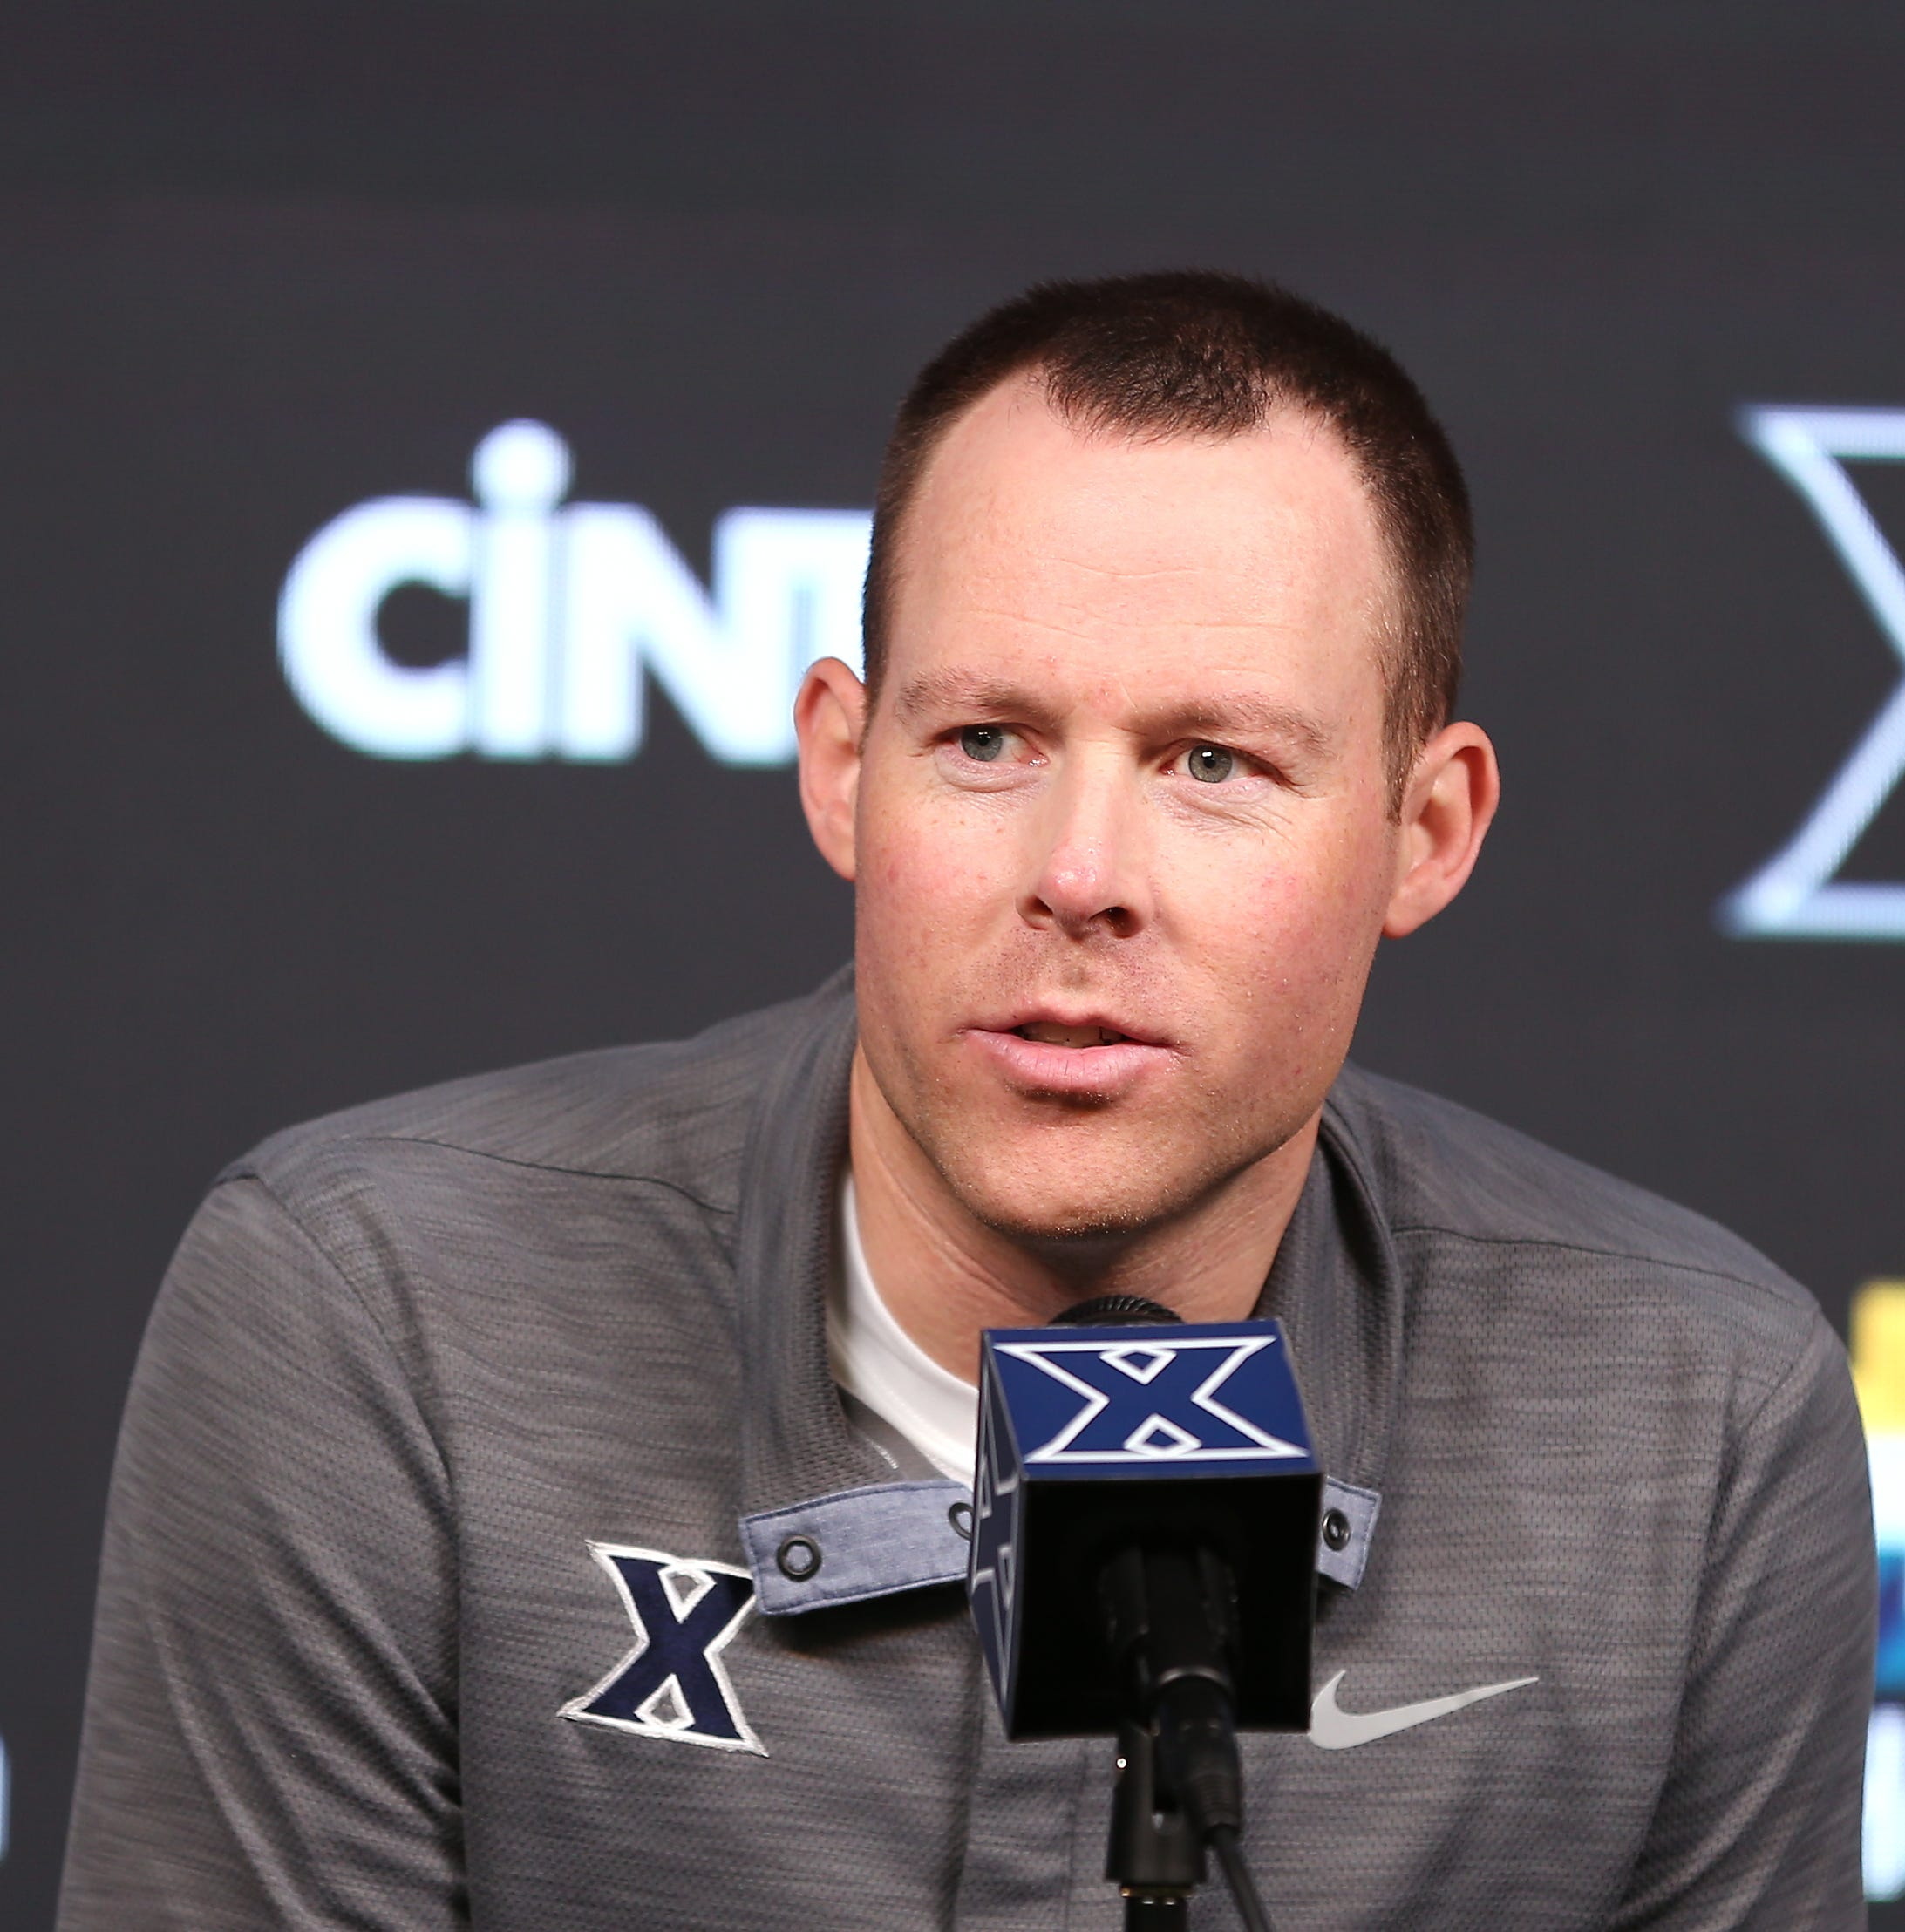 A look at Xavier basketball's 2019-2020 signing class with head coach Travis Steele